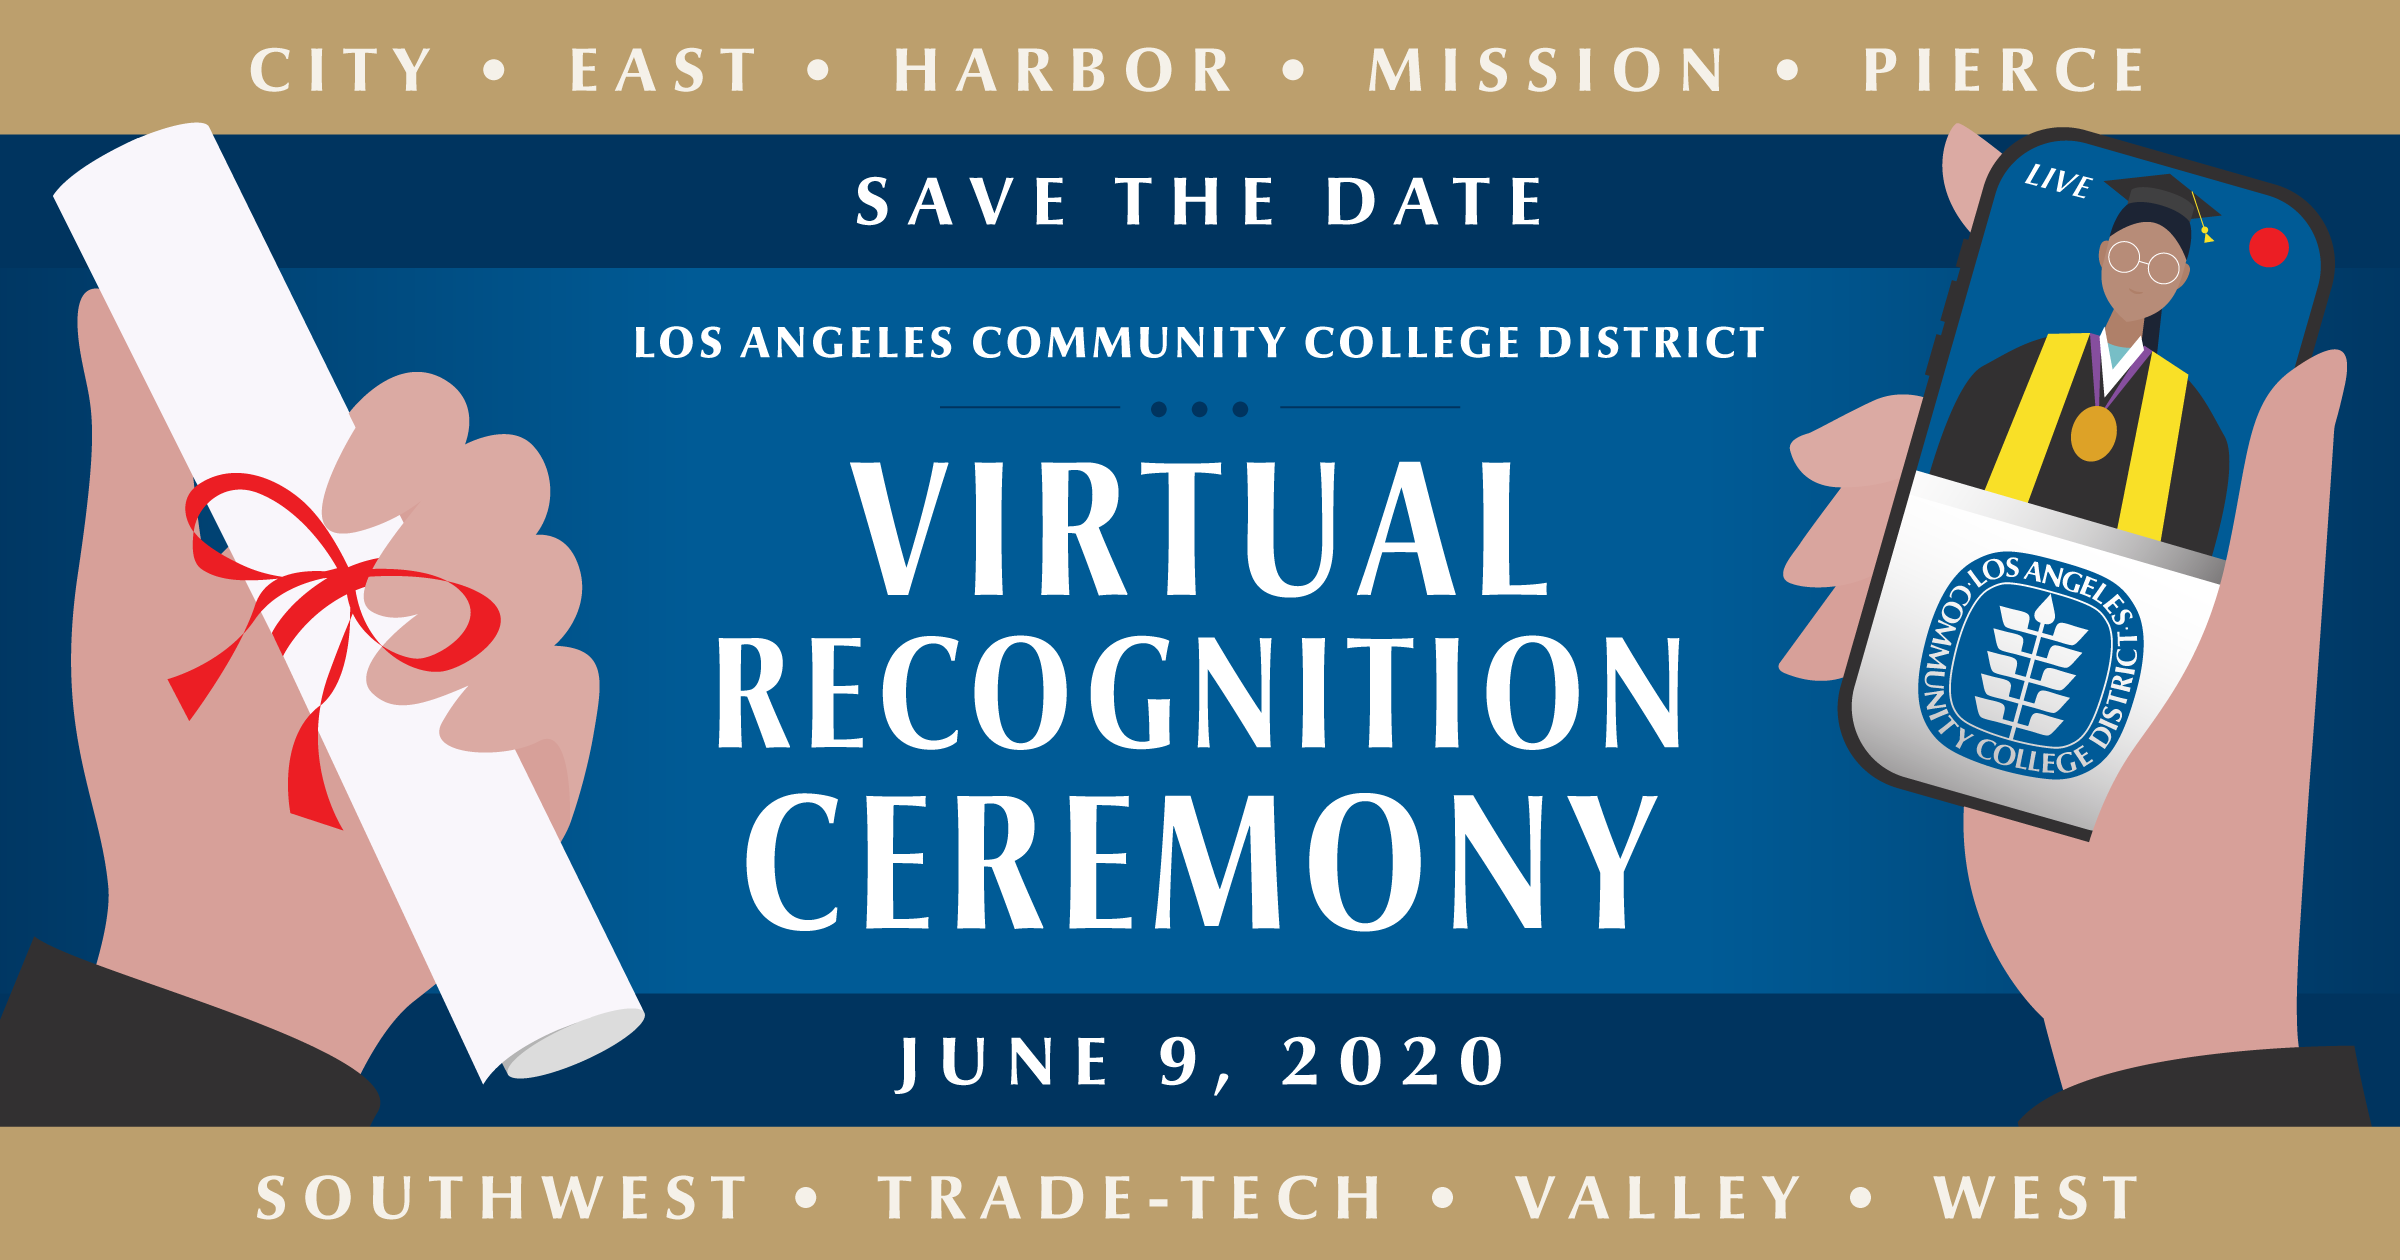 Save the date - LACCD Virtual Recognition Ceremony - June 9, 2020 - LATTC Virtual Recognition Ceremony